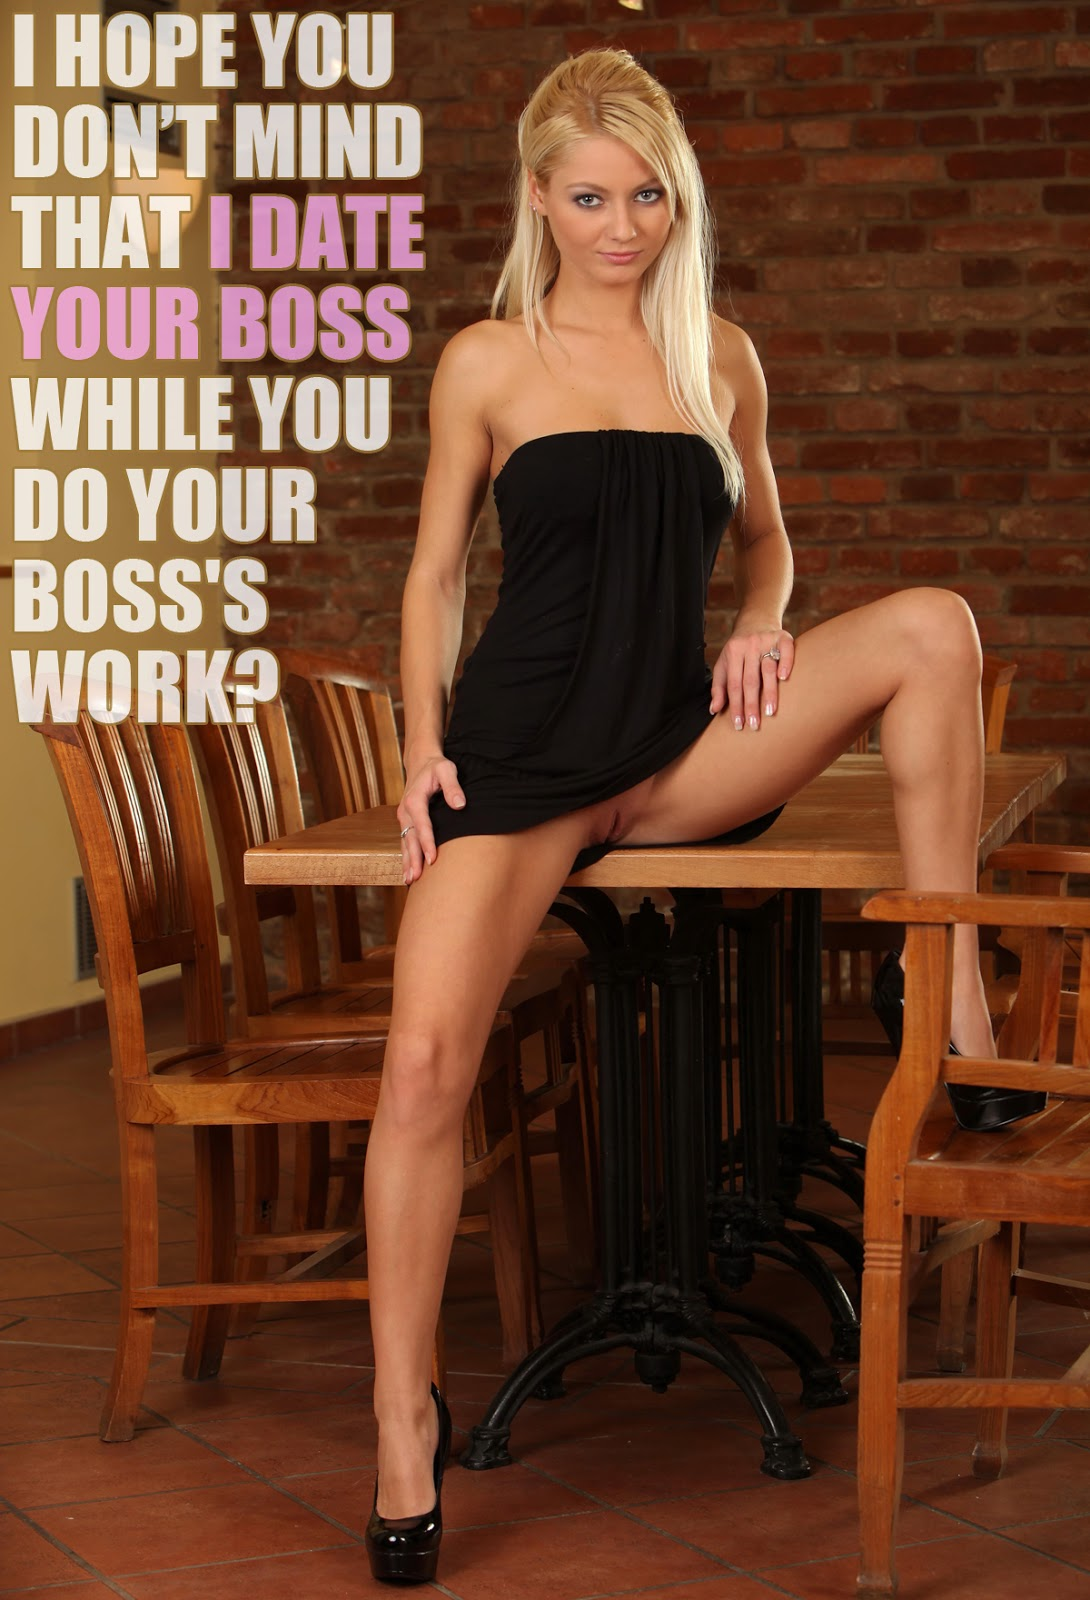 dating your boss daughter Vejen